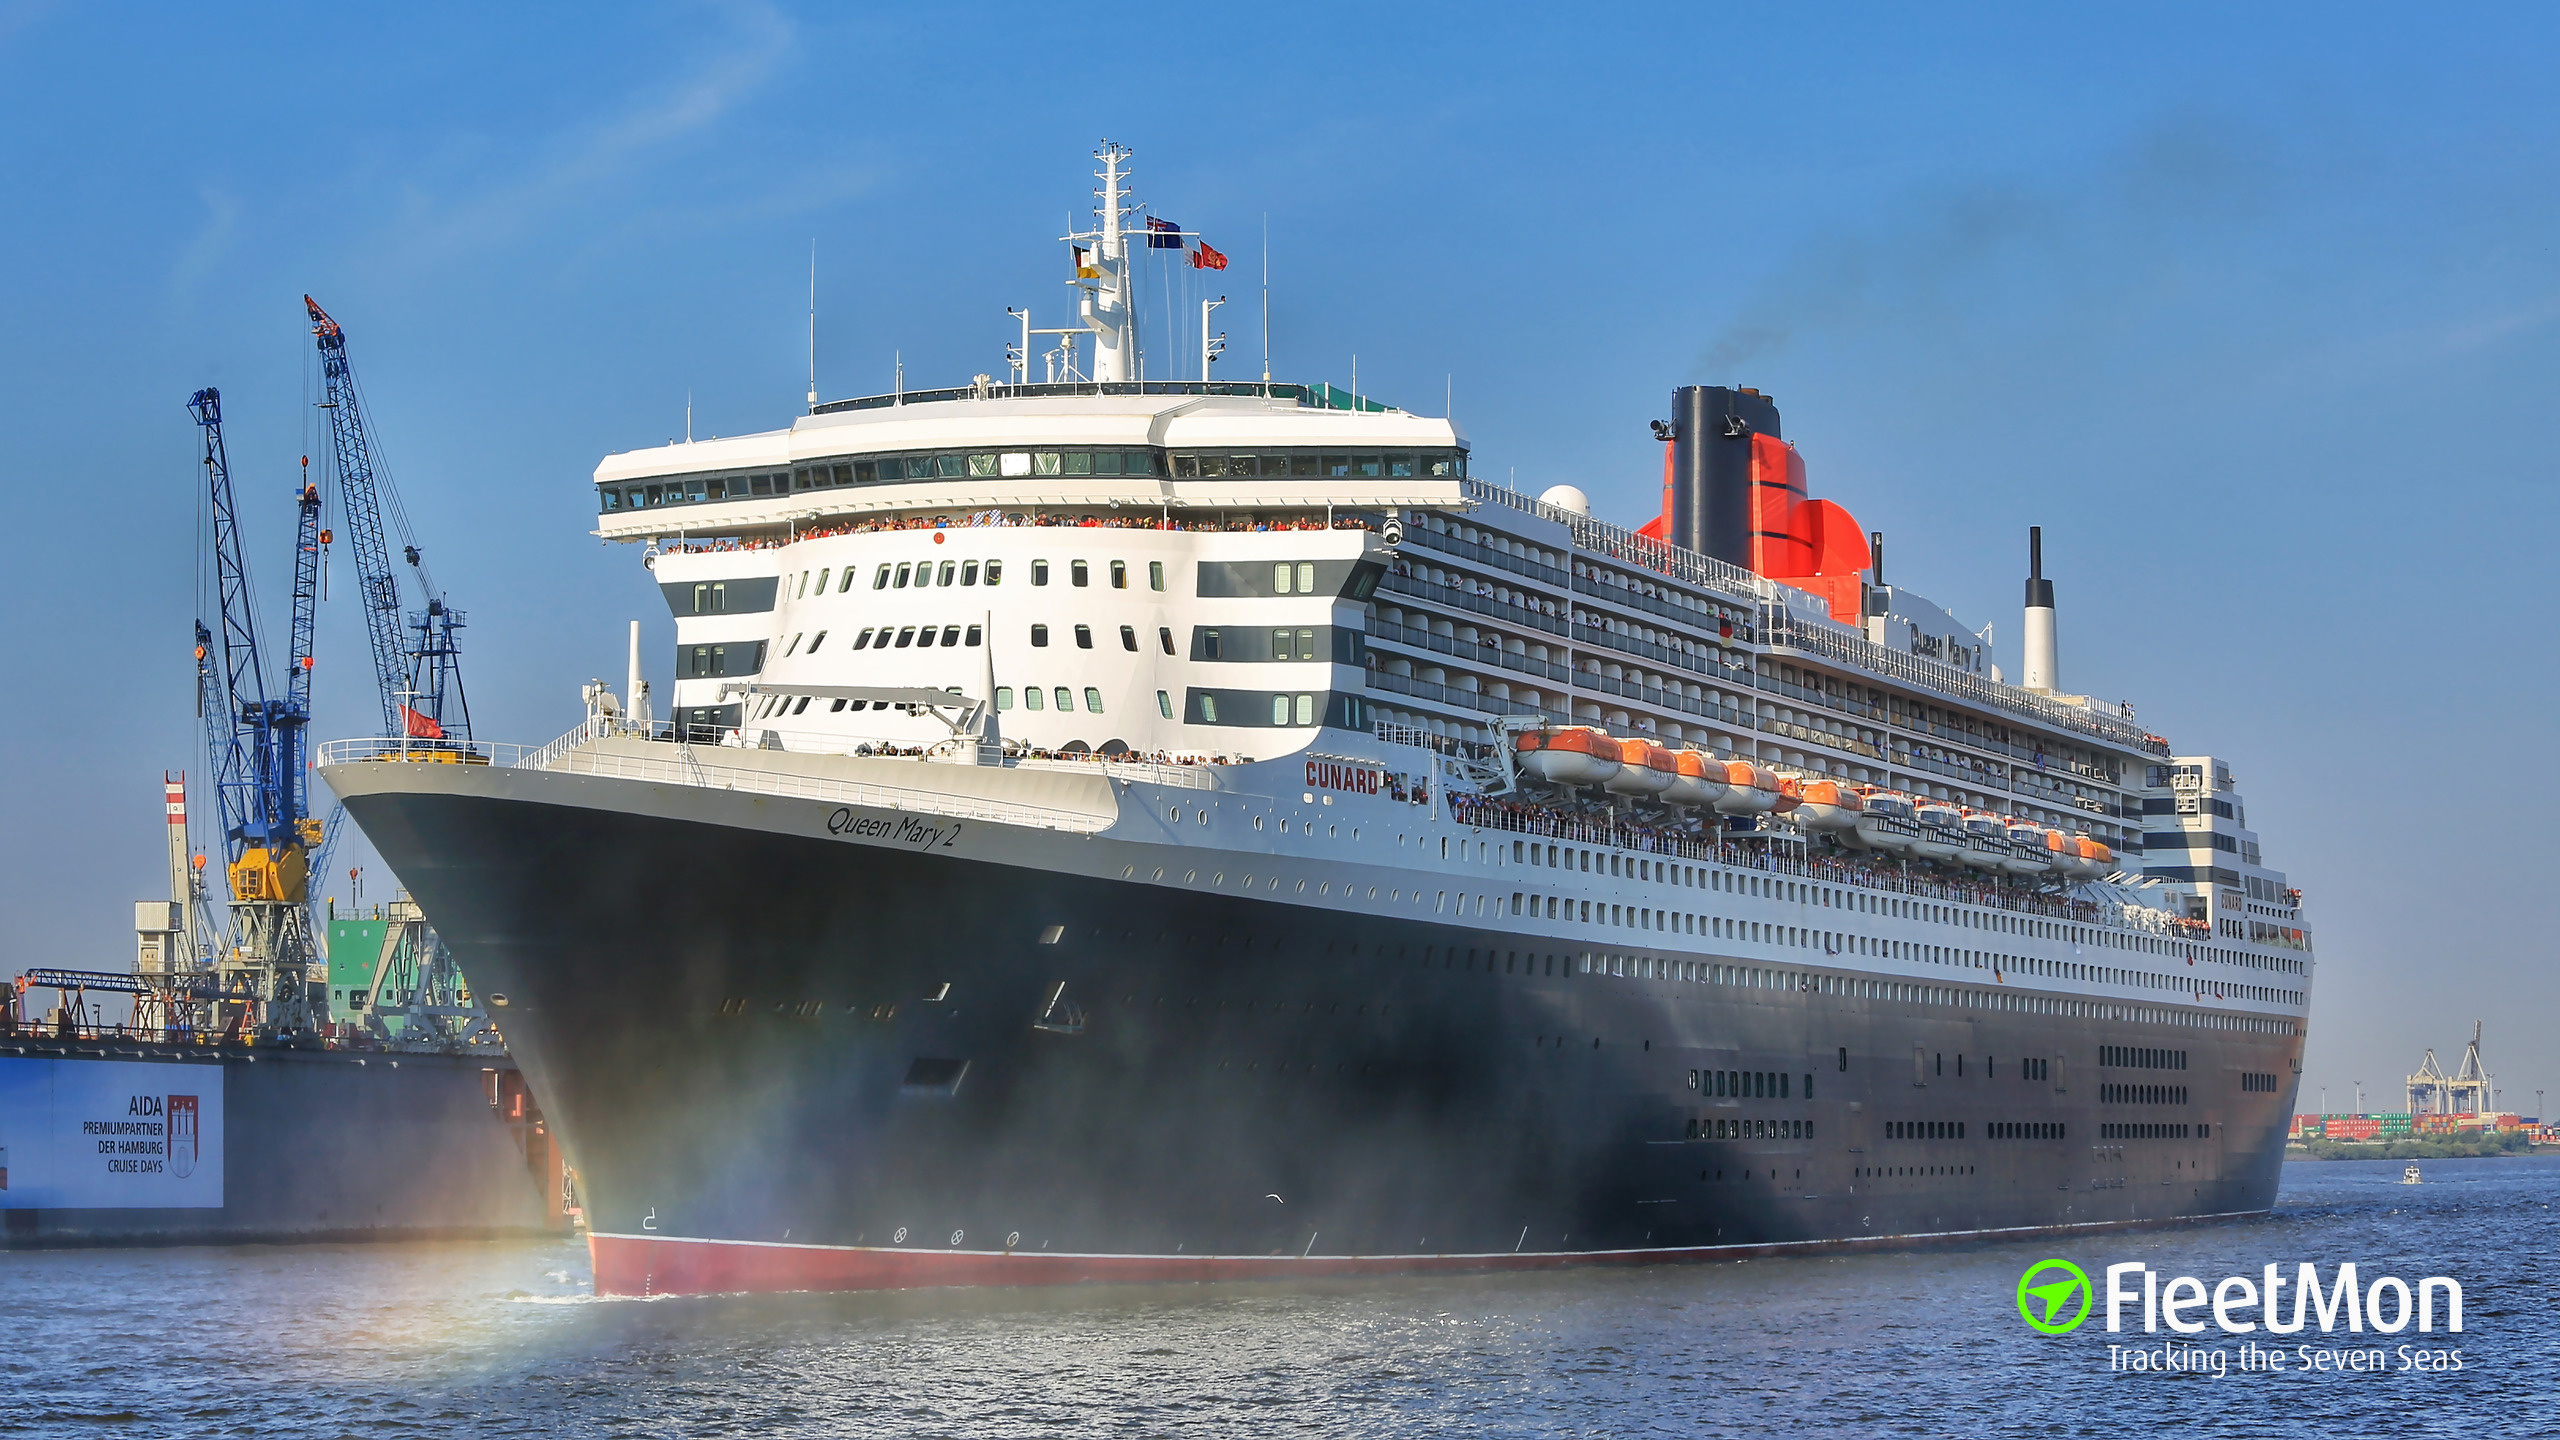 Queen mary 2 photo by fleetmon shipspotter montero